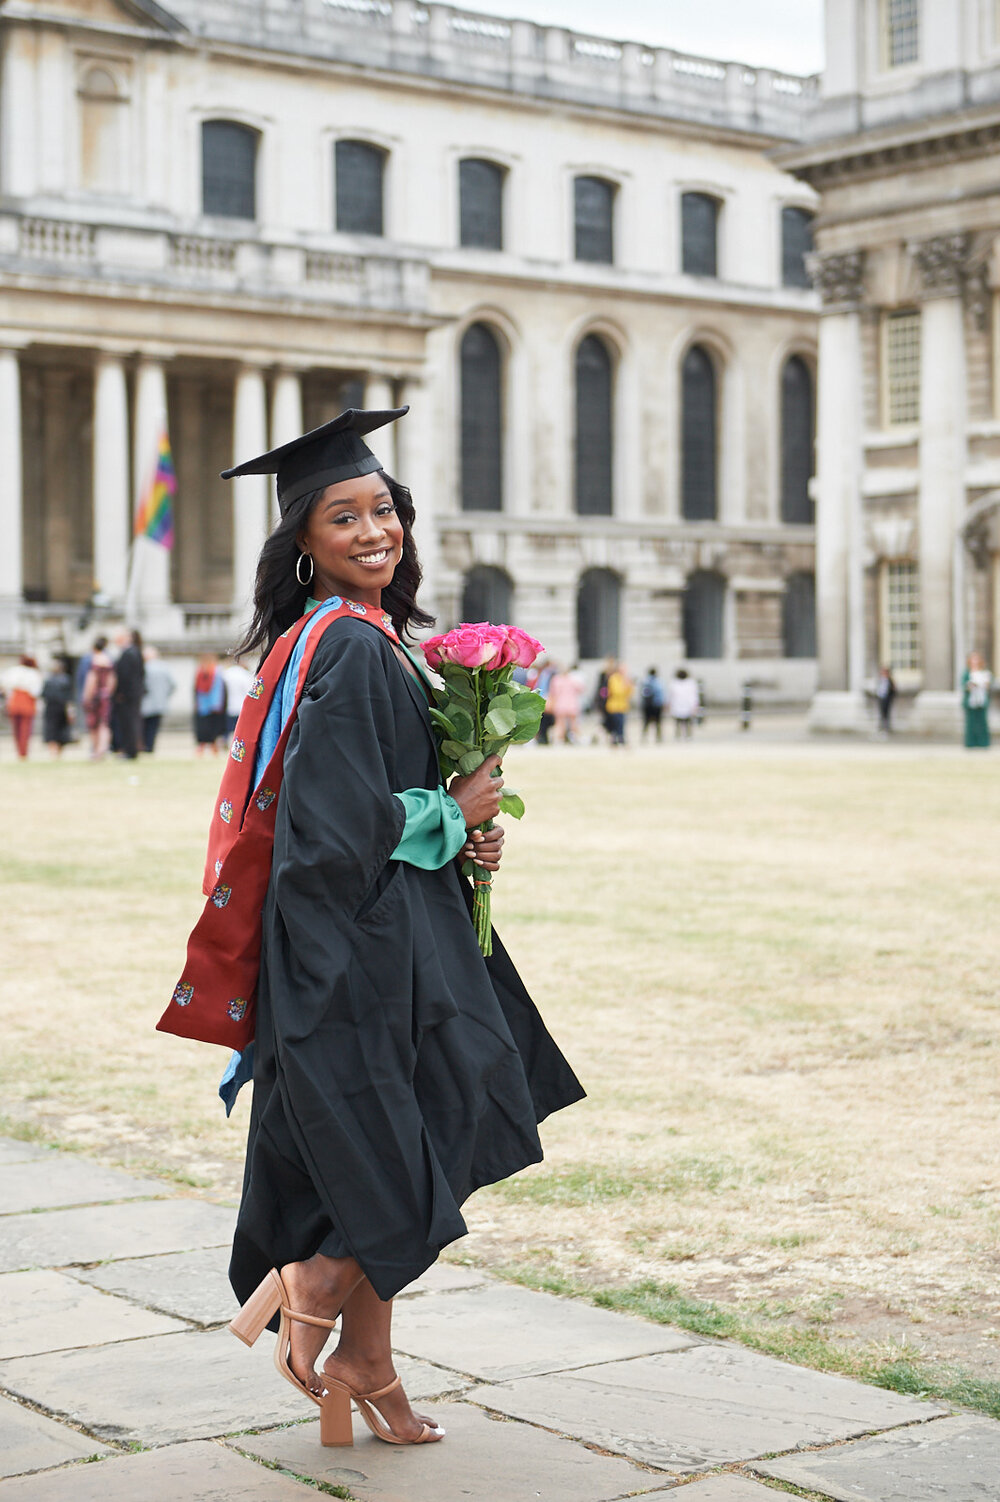 GRADUATION PHOTO SHOOT - MEDIUM PACKAGE   £250 or £225 (SE10 area)  Up to 1 hour outdoor natural light photoshoot  15 high-resolution fully edited digital pictures of your choice